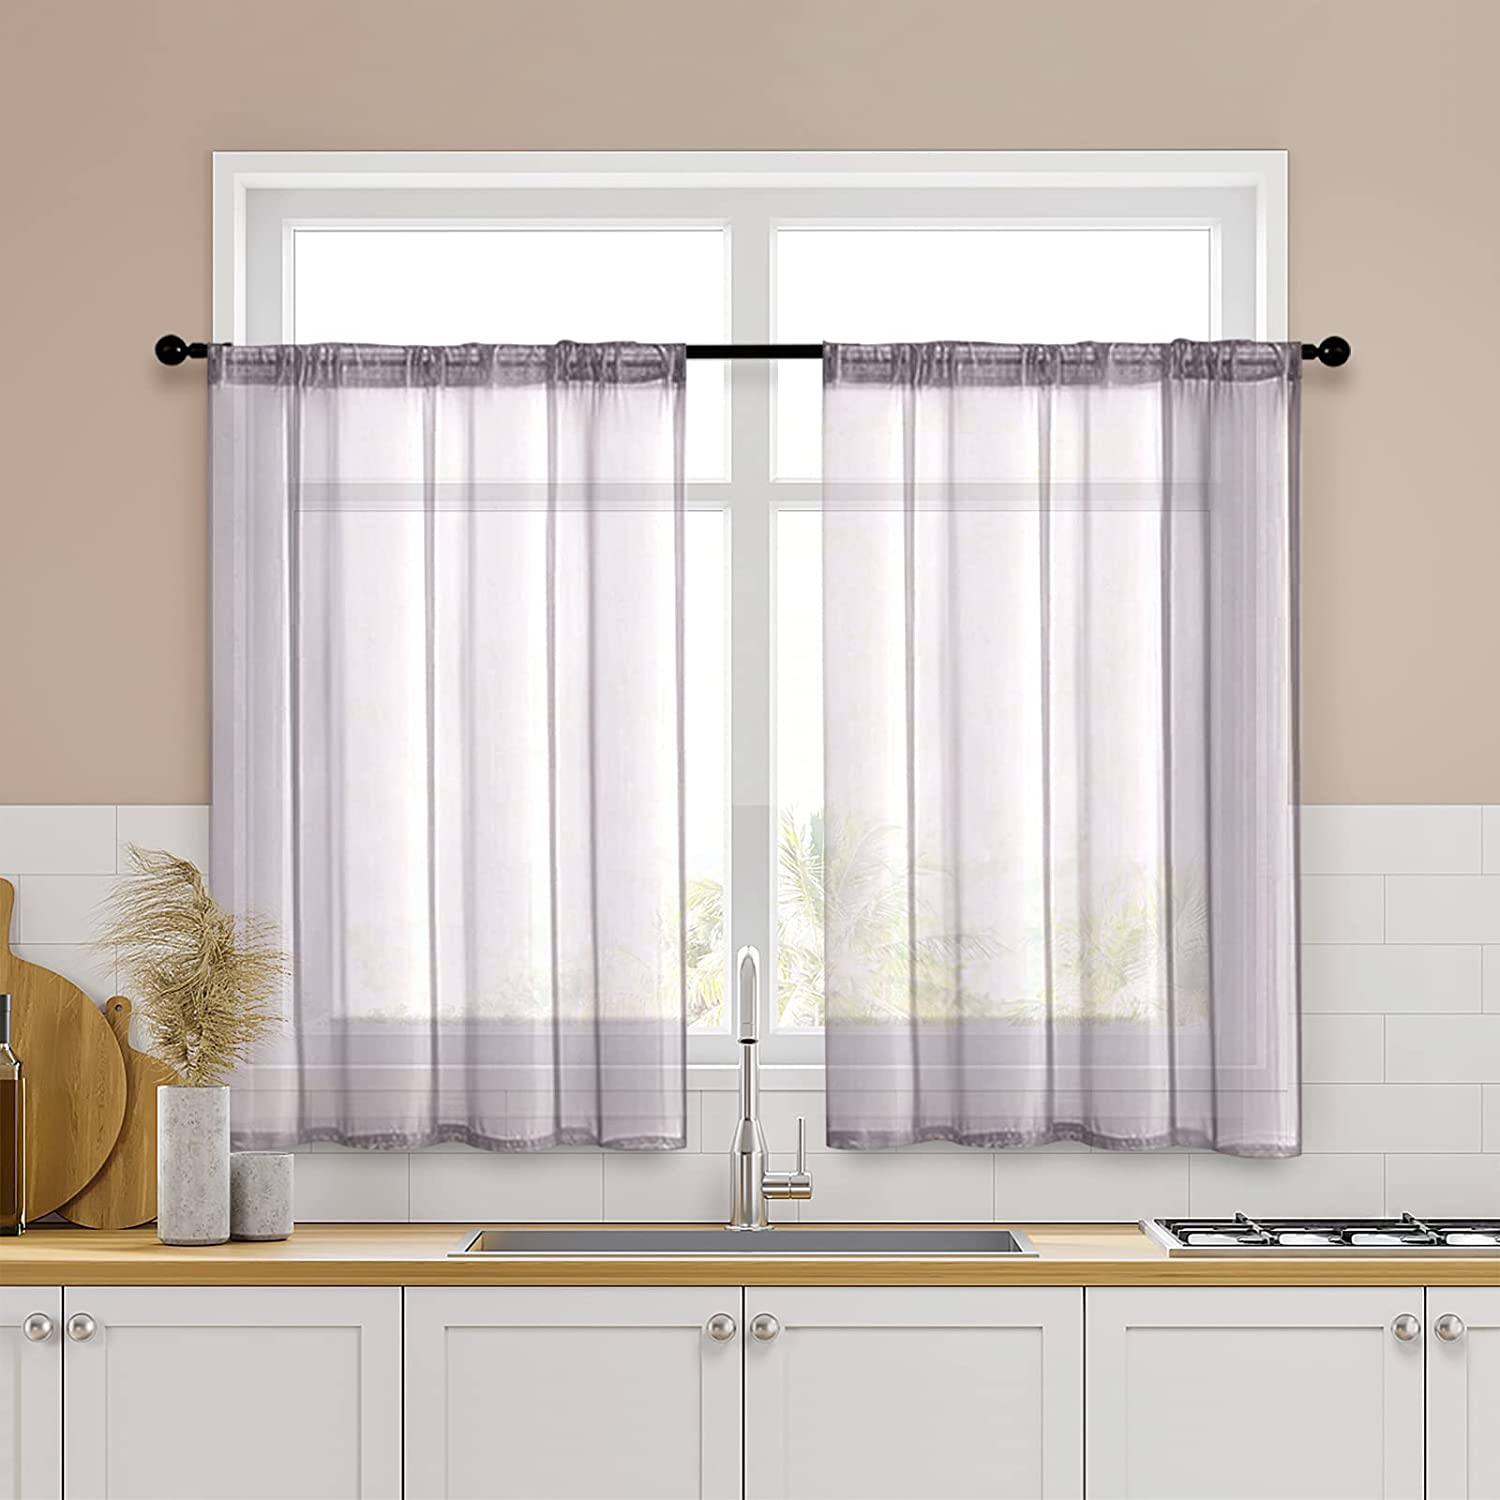 Amazon Com Mrtrees Grey Tier Curtains Sheer Kitchen Tiers 34 X 36 Inch Length Cafe Curtains Voile Short Sheers Bathroom Small Window Rod Pocket 2 Panels Half Window Curtains Gray Home Kitchen